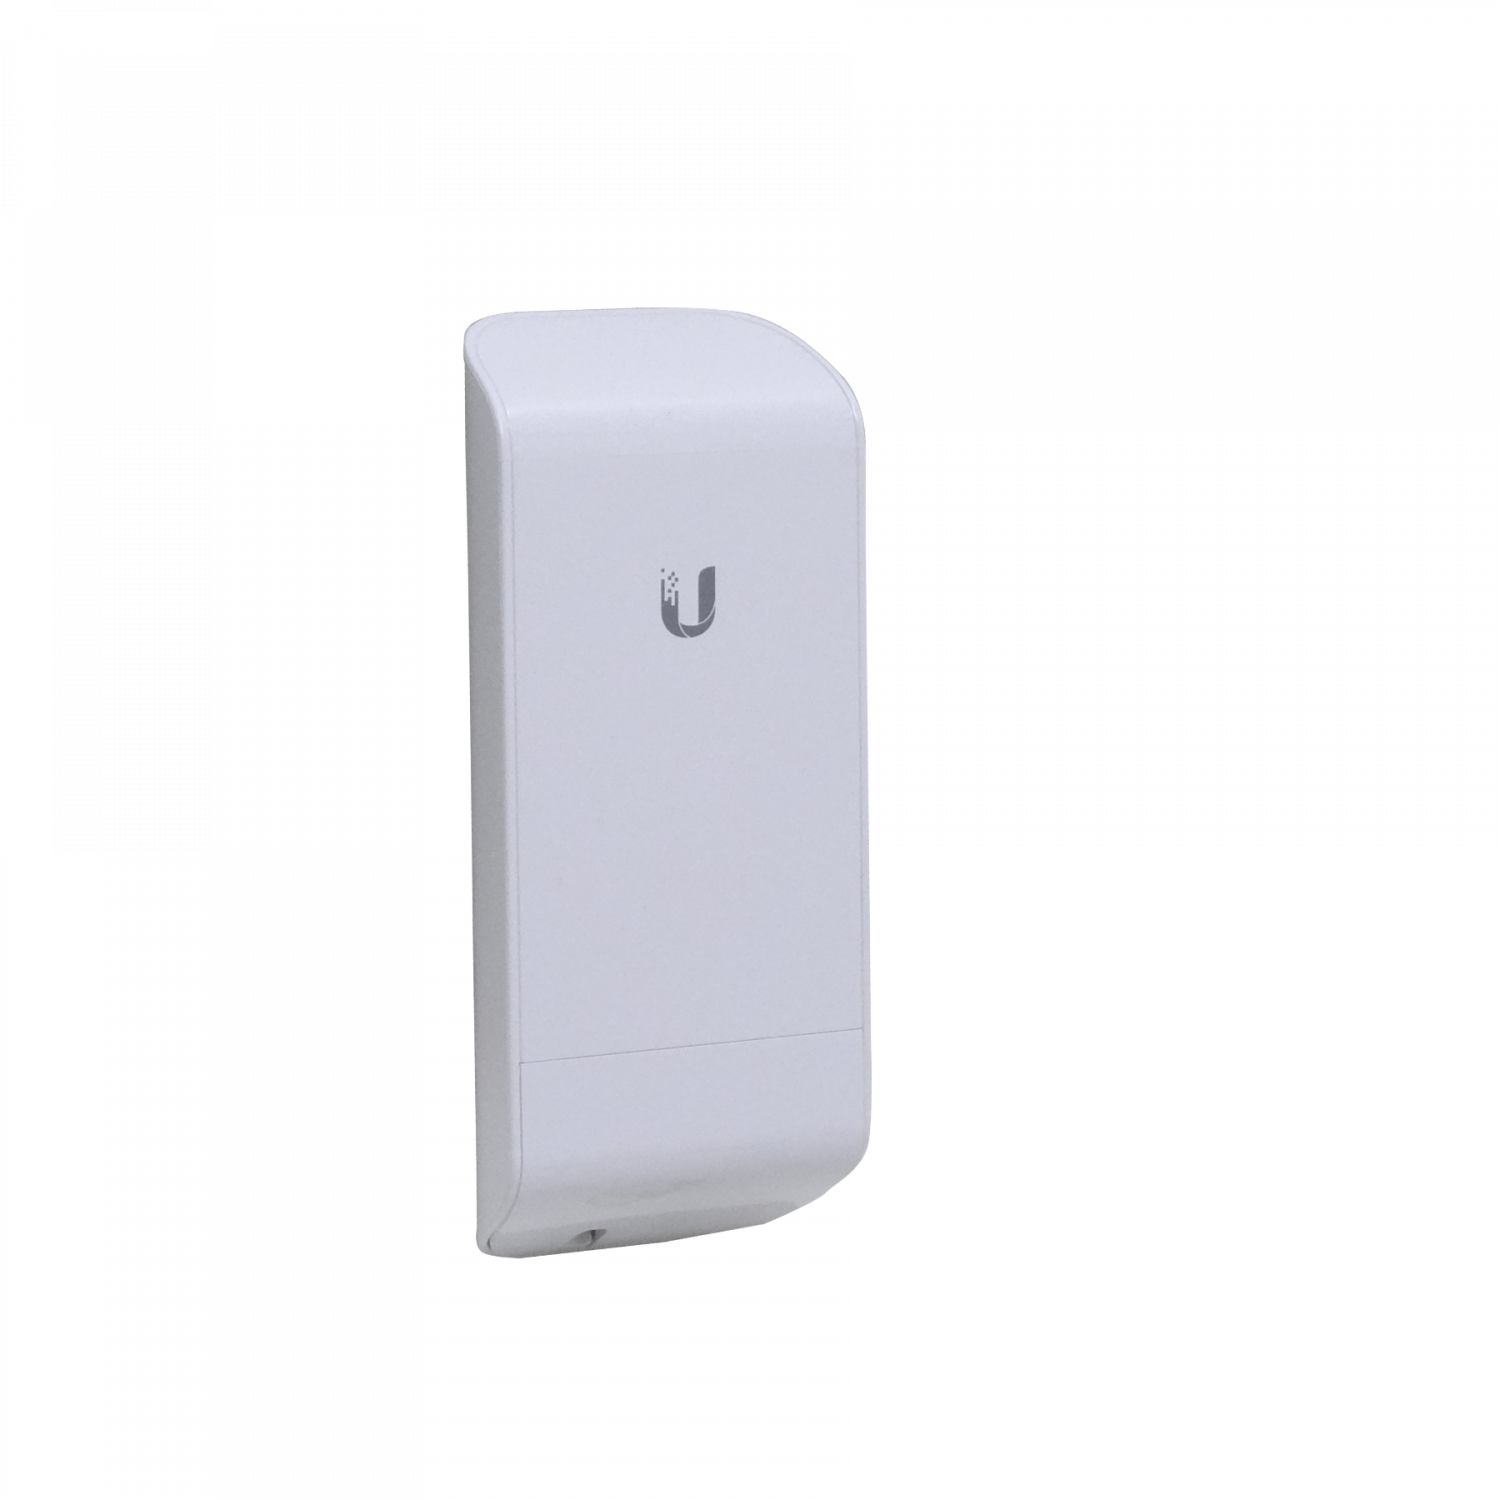 Access Point Ubiquiti Airmax® 5 GHz NanoStation LOCOM5